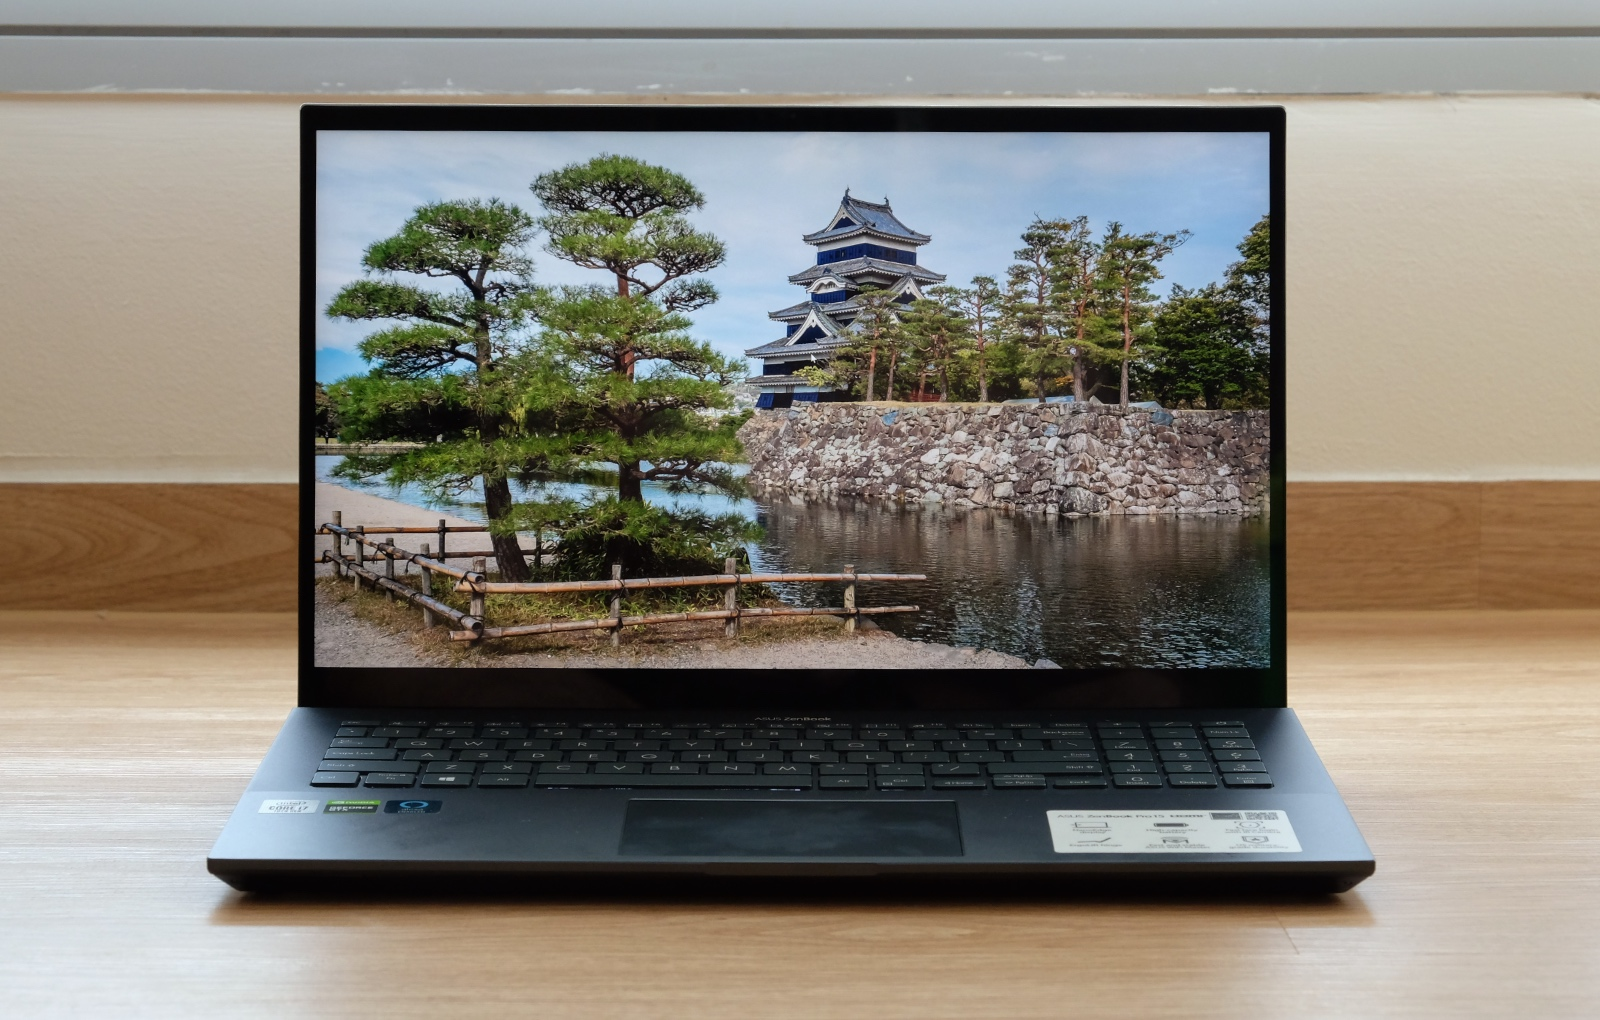 The ZenBook Pro 15 UX535 is the half the price of ASUS' flagship ZenBook Pro Duo 15 UX582 but it certainly isn't half the notebook.